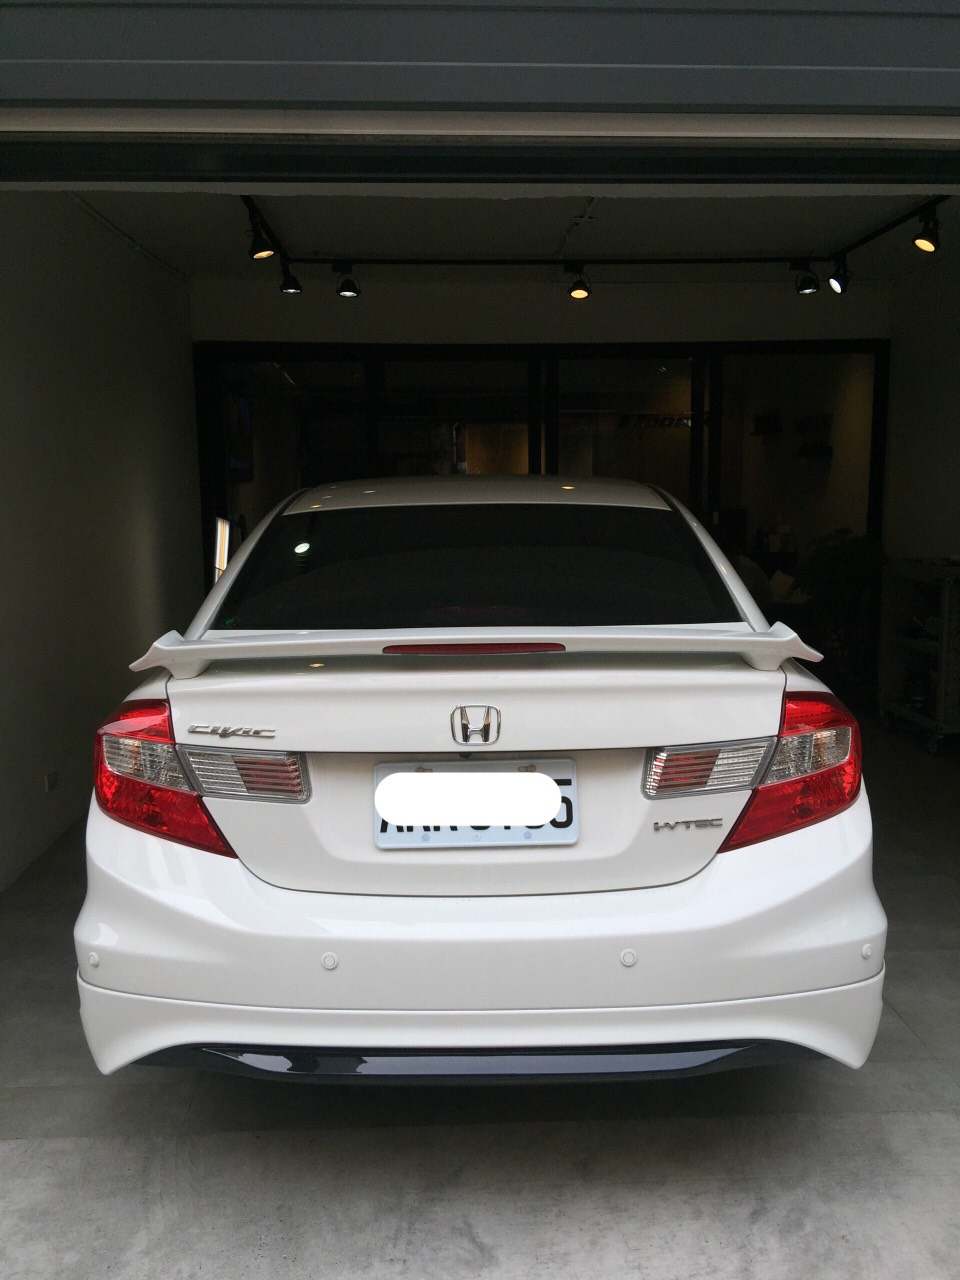 Honda Civic 前葉子鈑凹痕修復